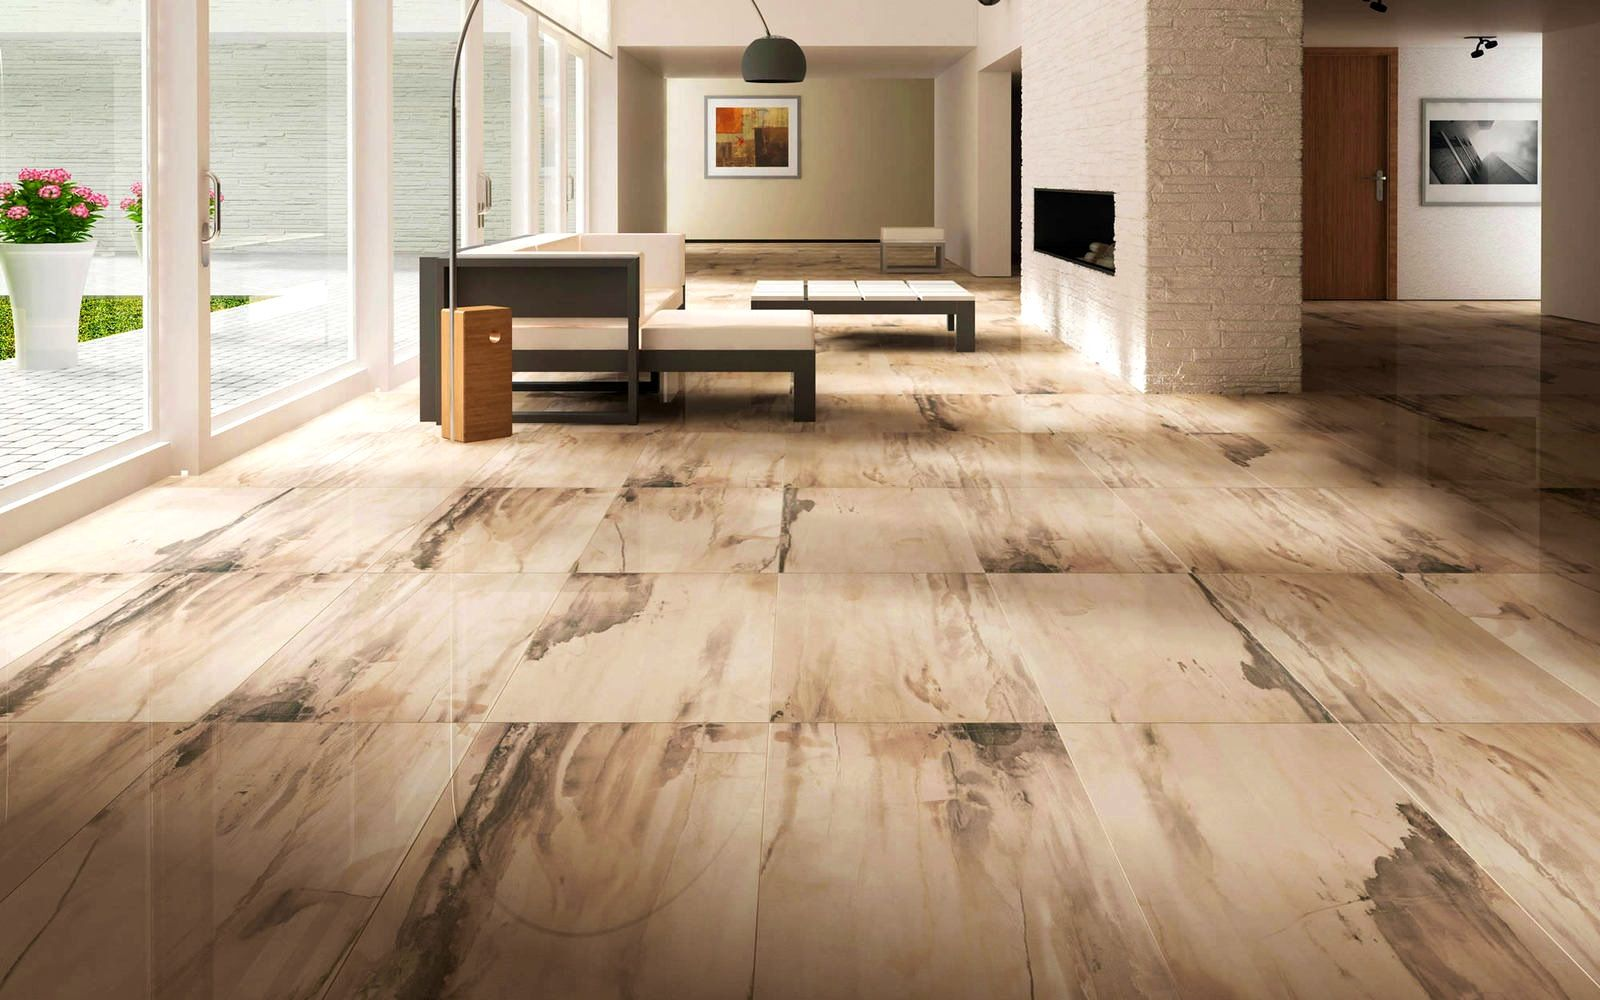 Living Room Floor Tiles Design Impressive Apartmentsknockout Tagged Floor Tiles Design For Living Room Inspiration Design